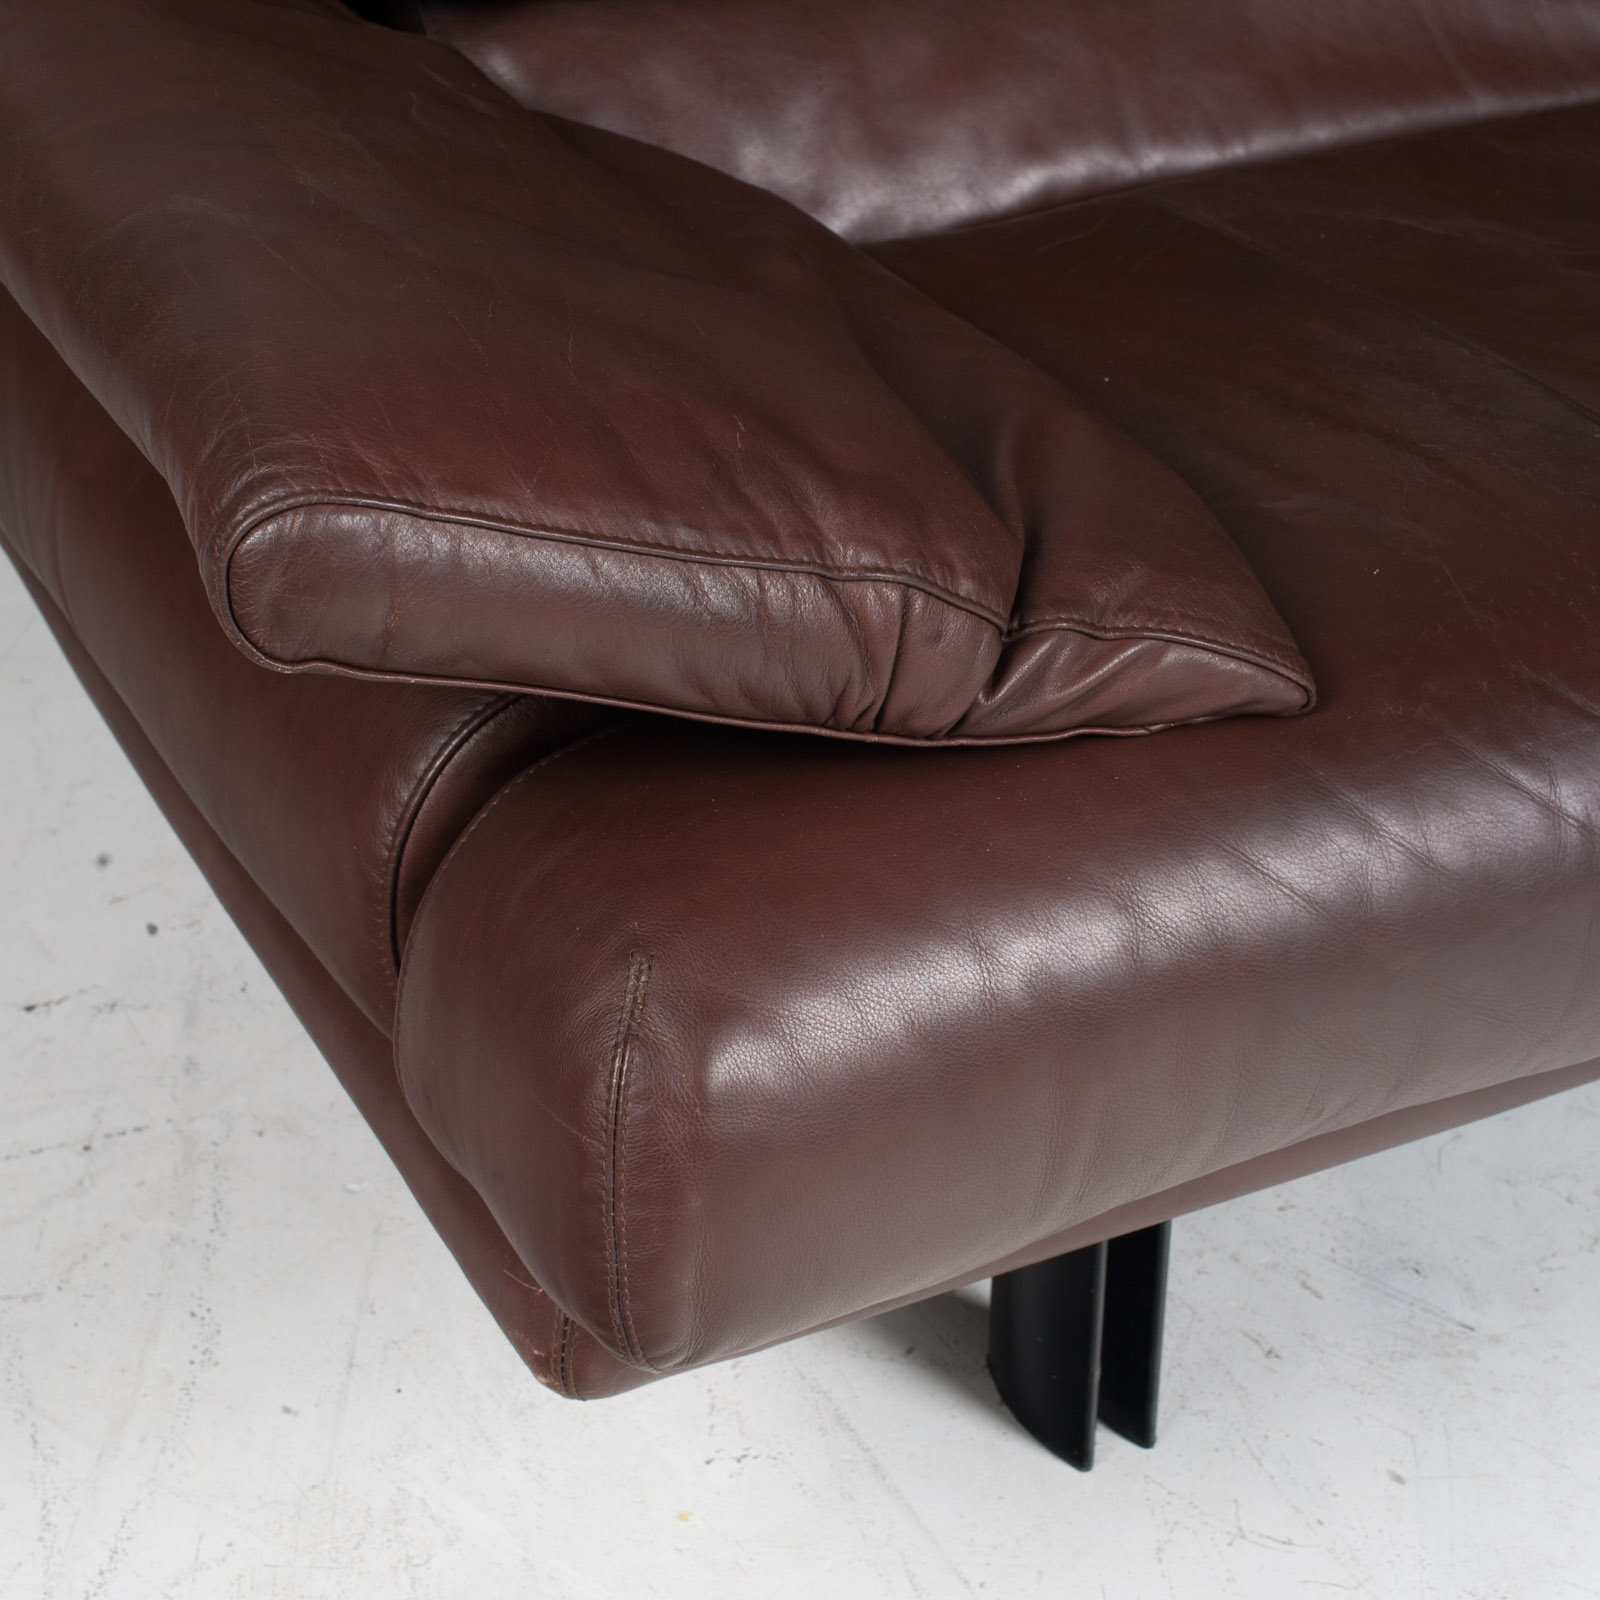 Alanda Sofa By Paolo Piva For B B Italia In Brown Leather